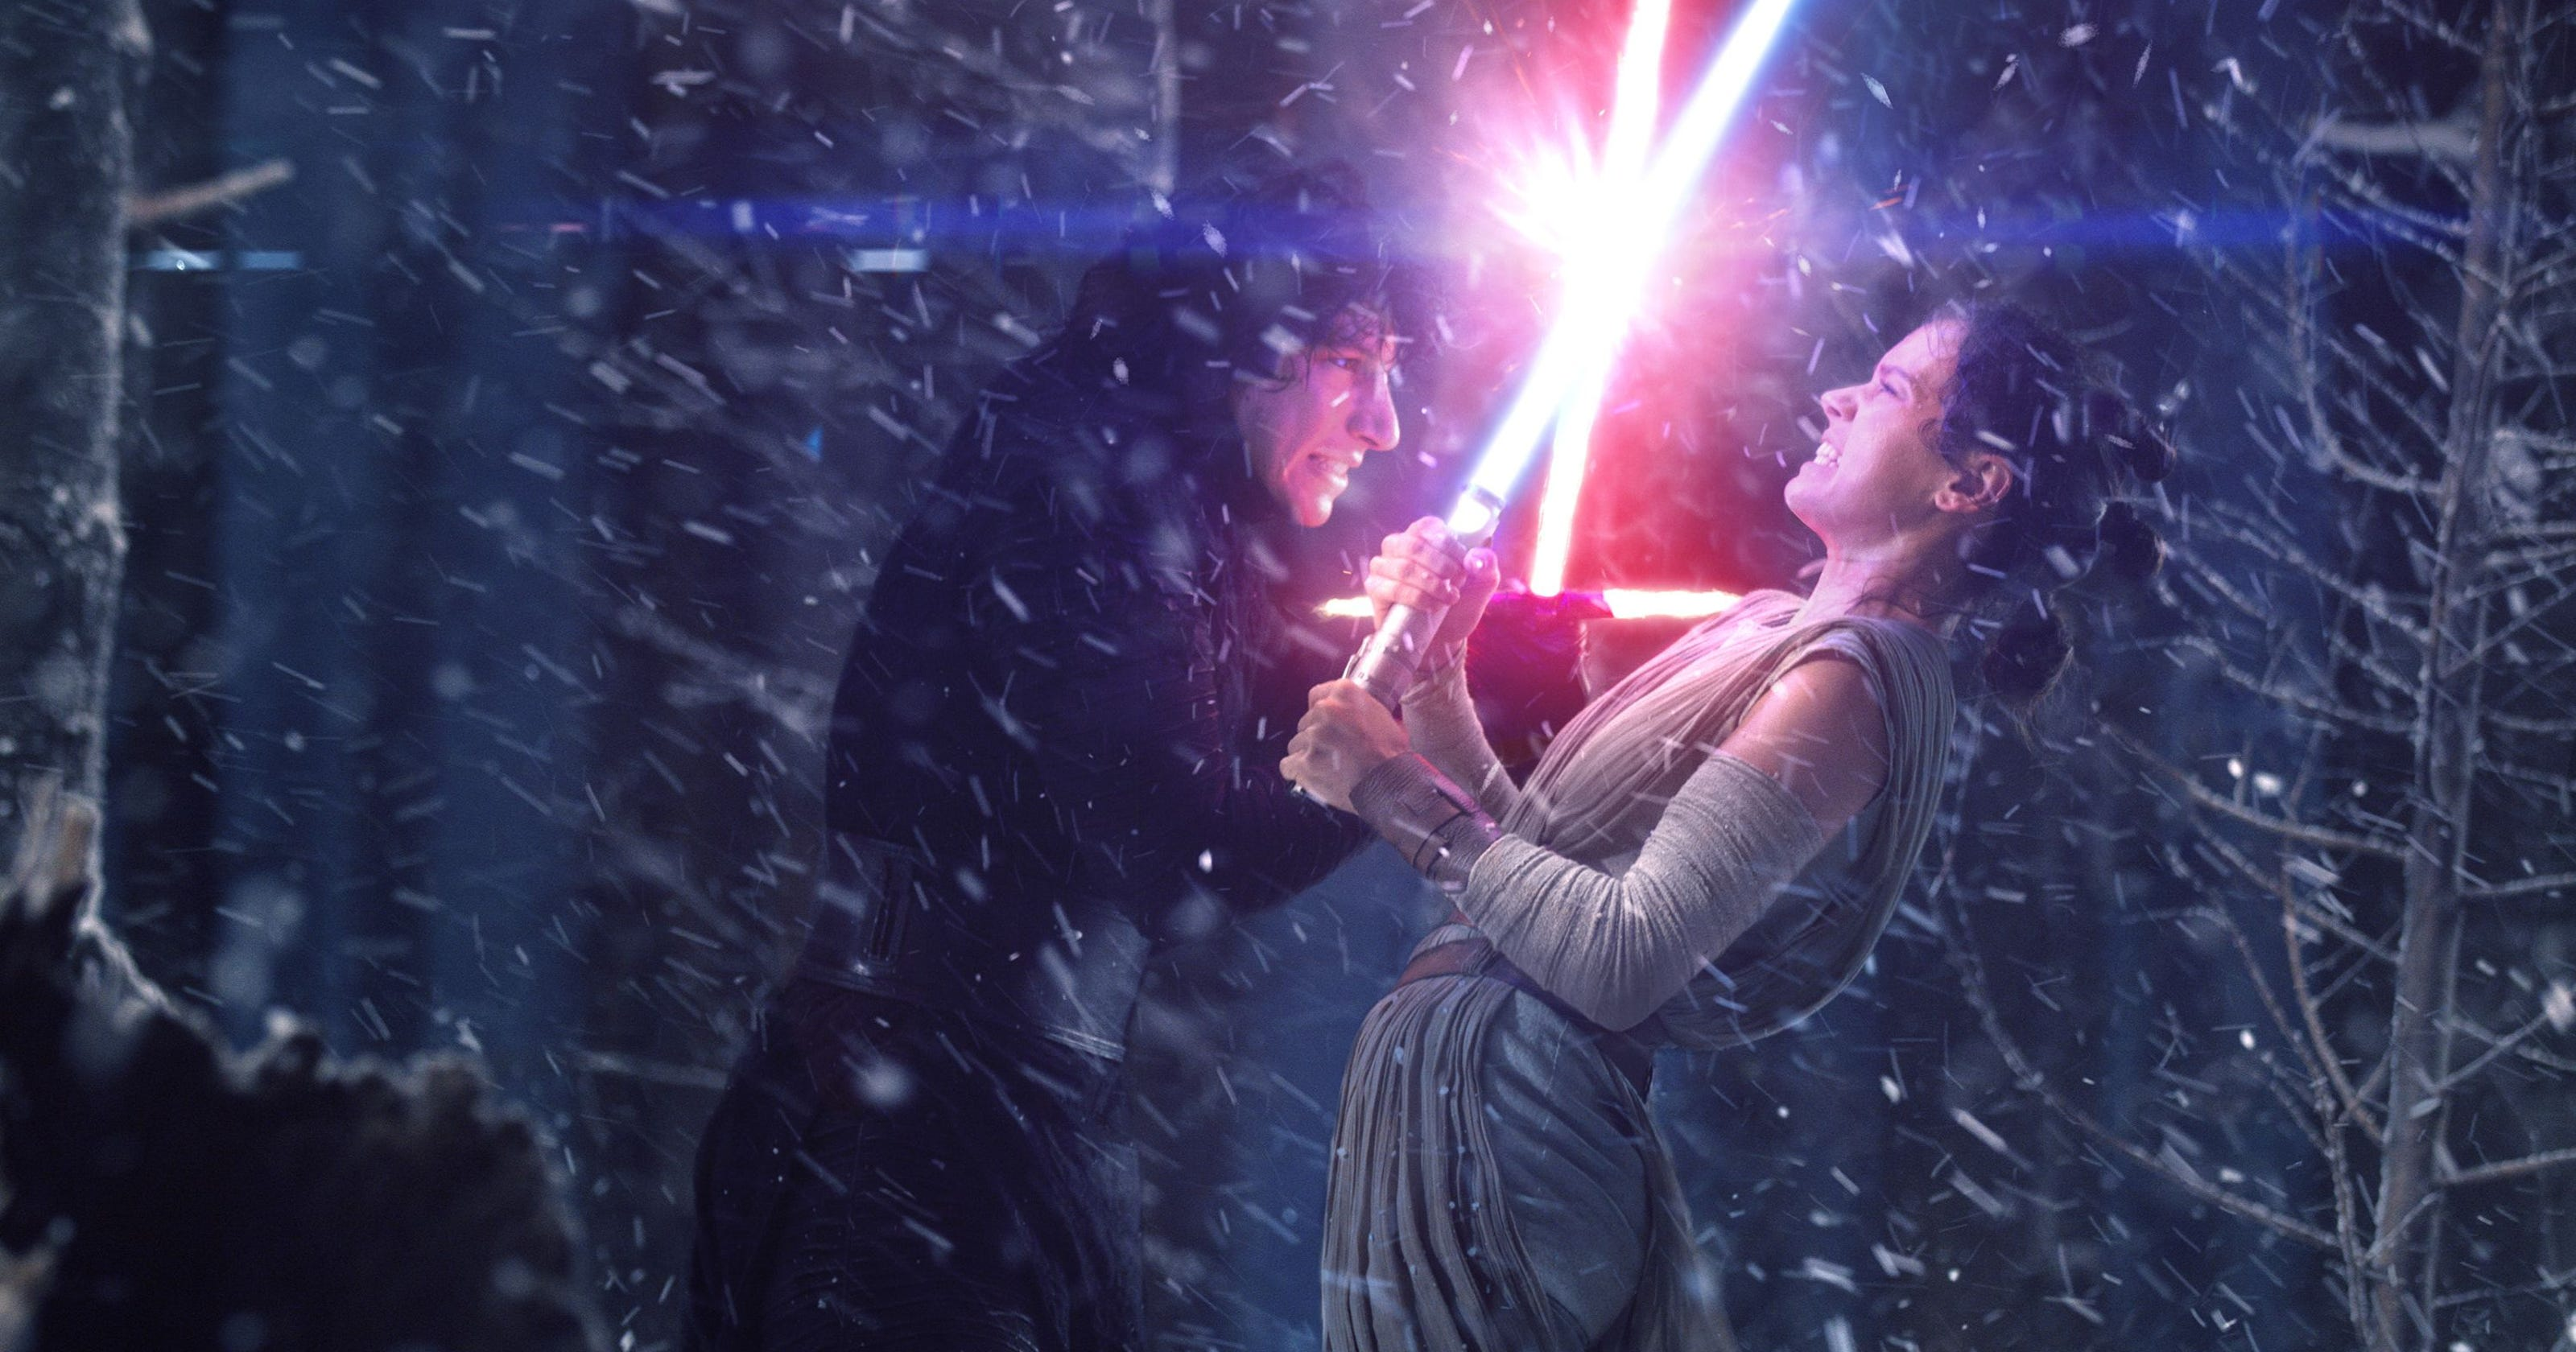 Star Wars The Rise Of Skywalker To Explore Bond With Rey Kylo Ren Indiewire